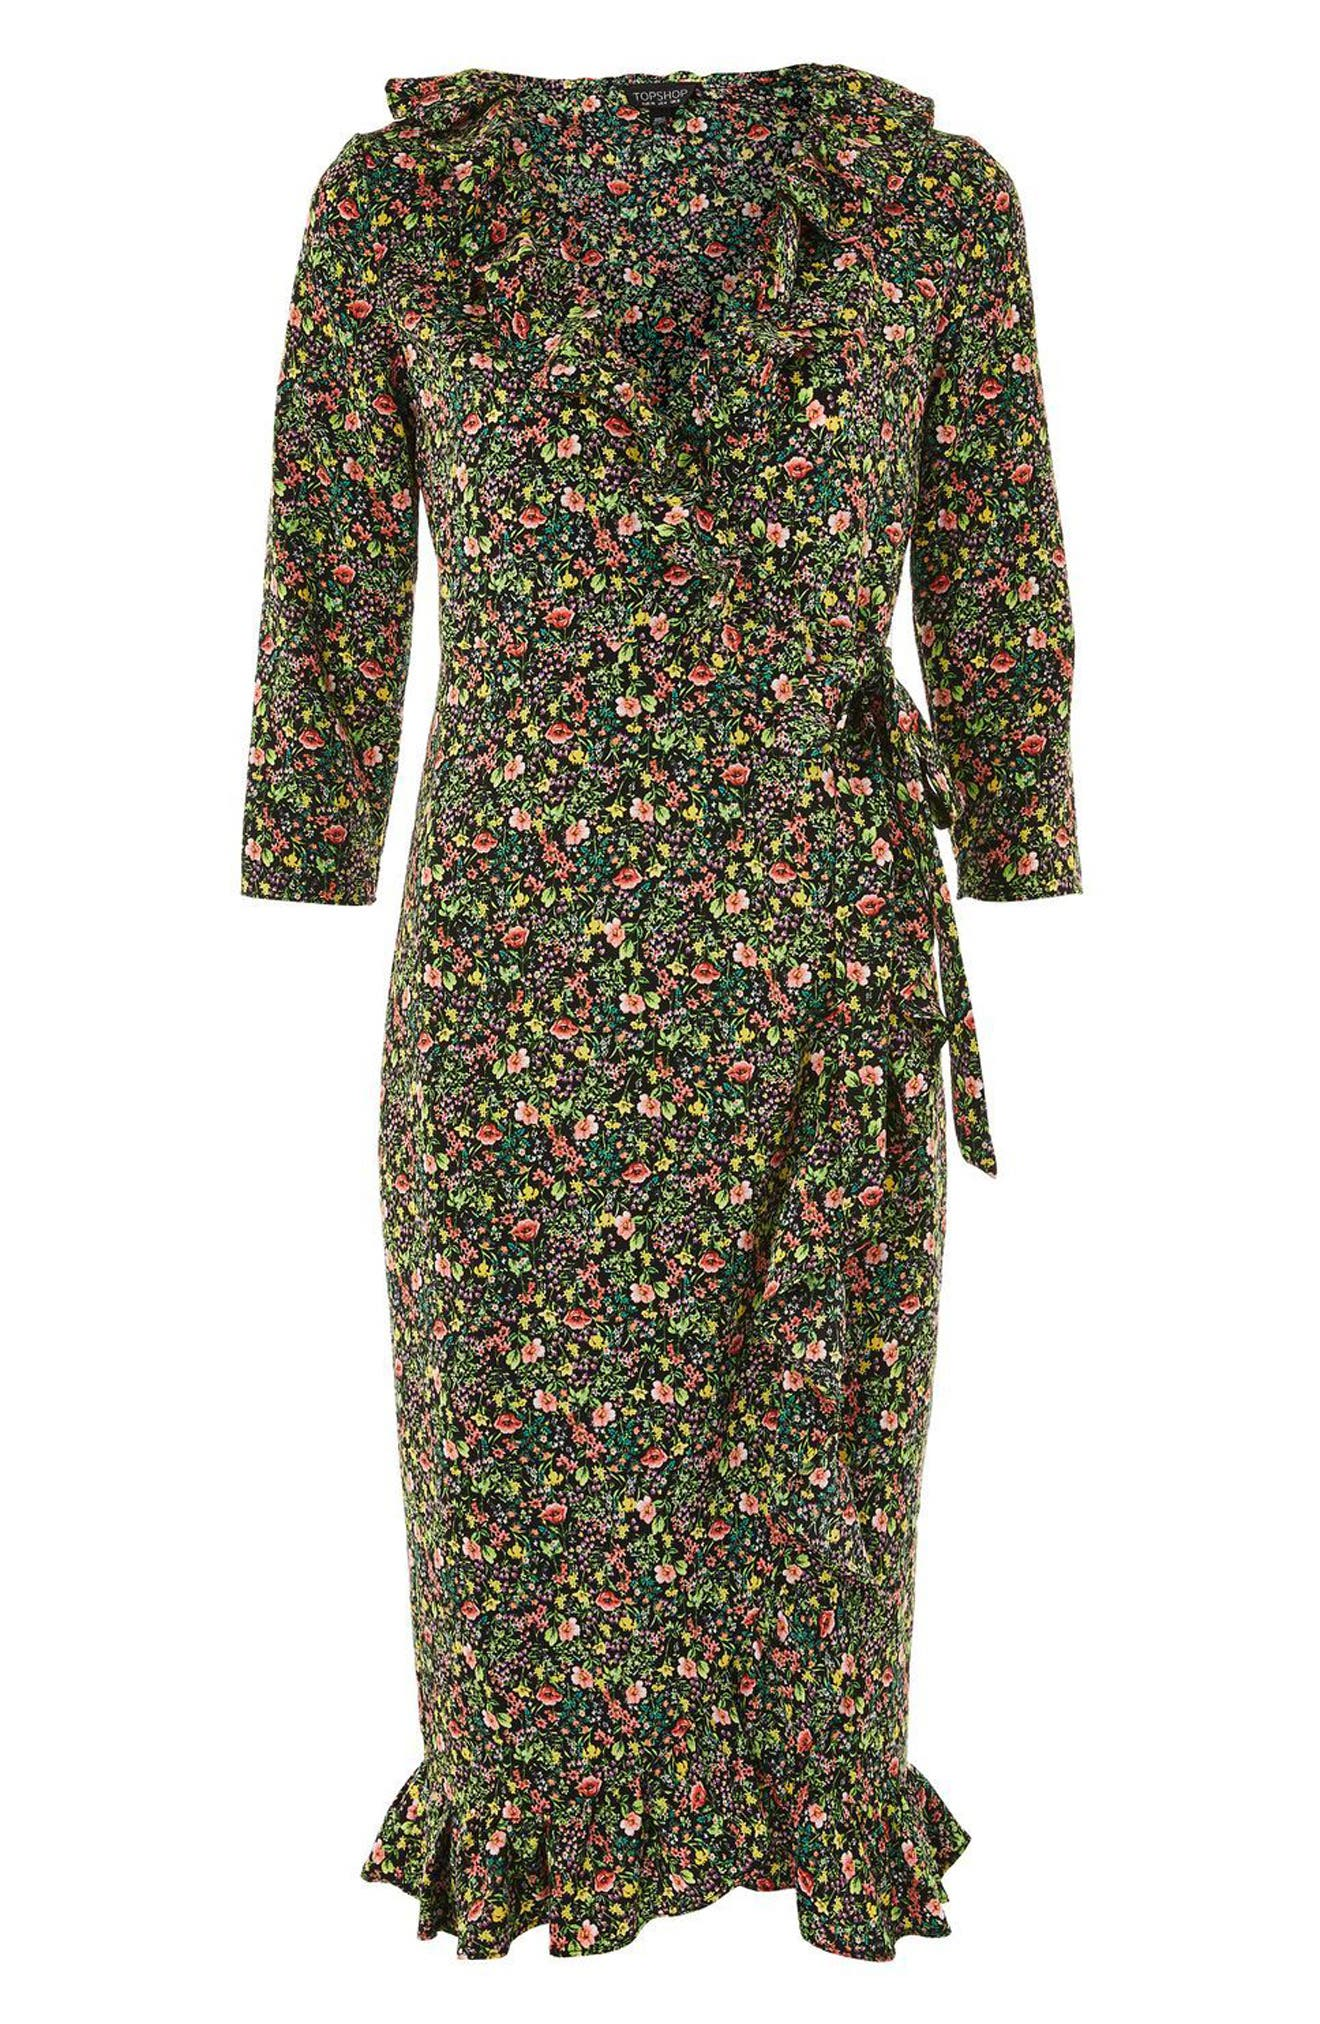 TOPSHOP, Flower Garden Ruffle Wrap Dress, Alternate thumbnail 4, color, 001